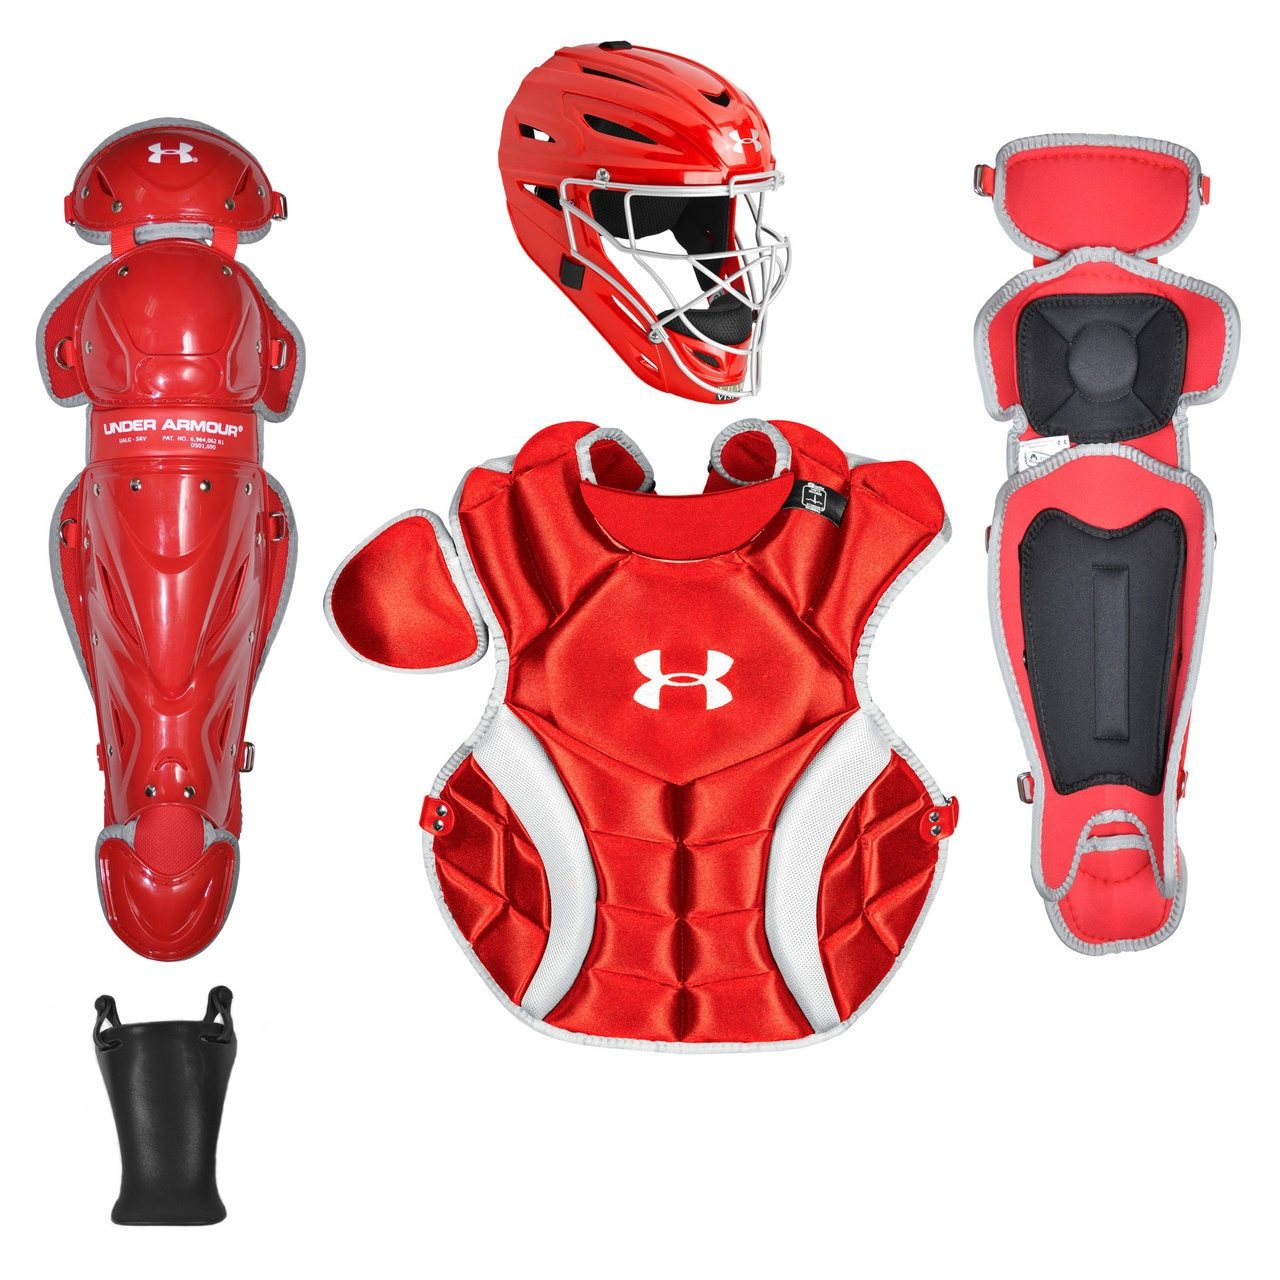 Under Armour PTH Victory Series NOCSAE Youth Baseball Catcher's Package